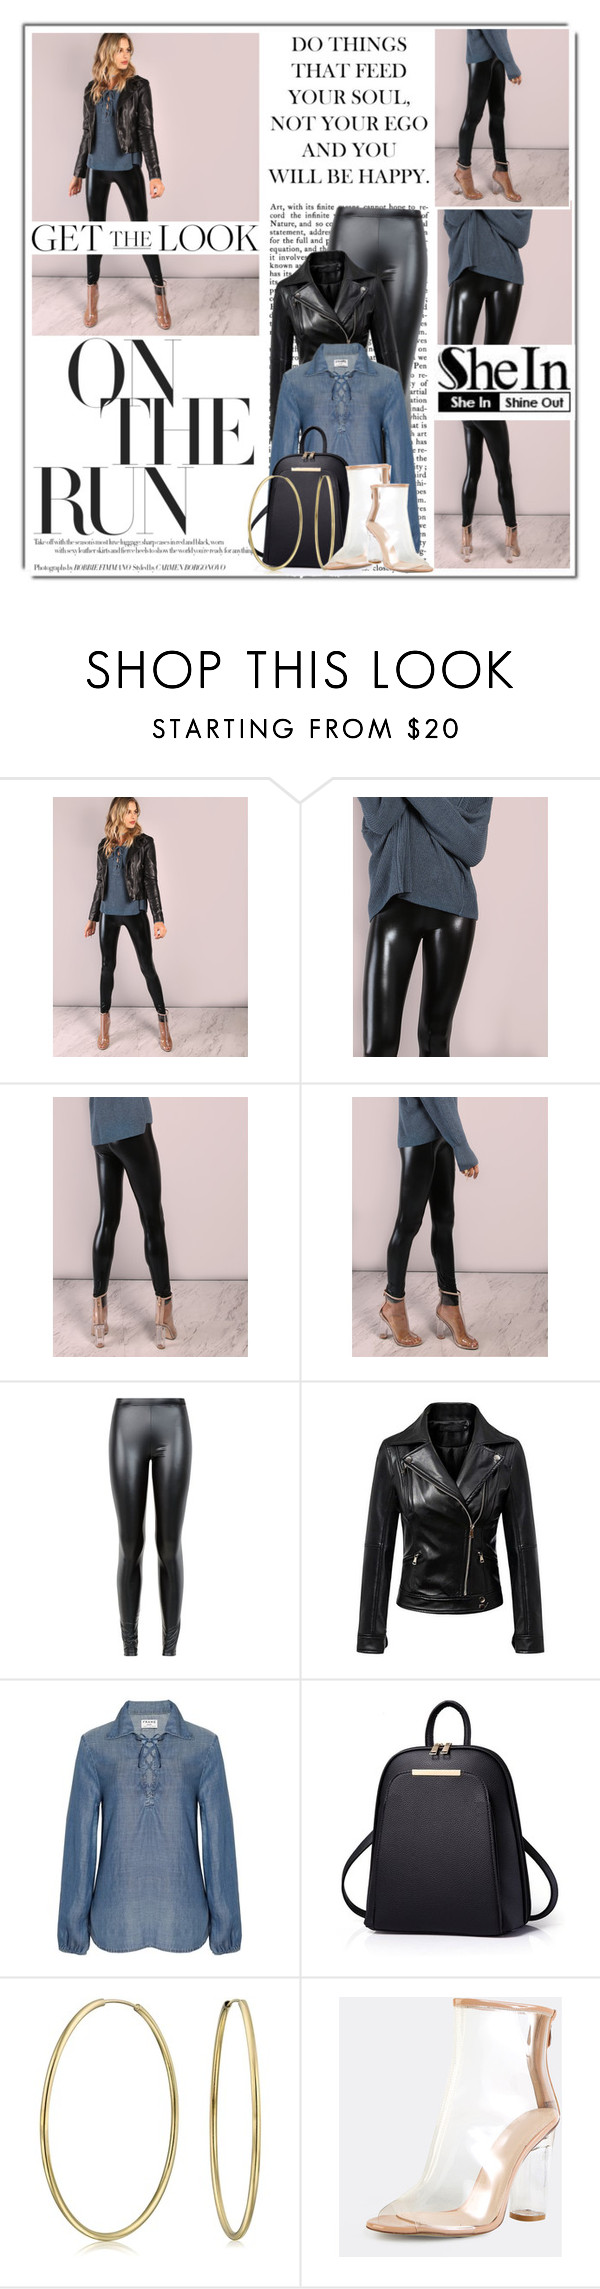 """Oh Those Leggings......Yeah I Know"" by queenrachietemplateaddict ❤ liked on Polyvore featuring JDY, Chicnova Fashion, Frame, Bling Jewelry, GetTheLook, leatherjacket and Leggings"